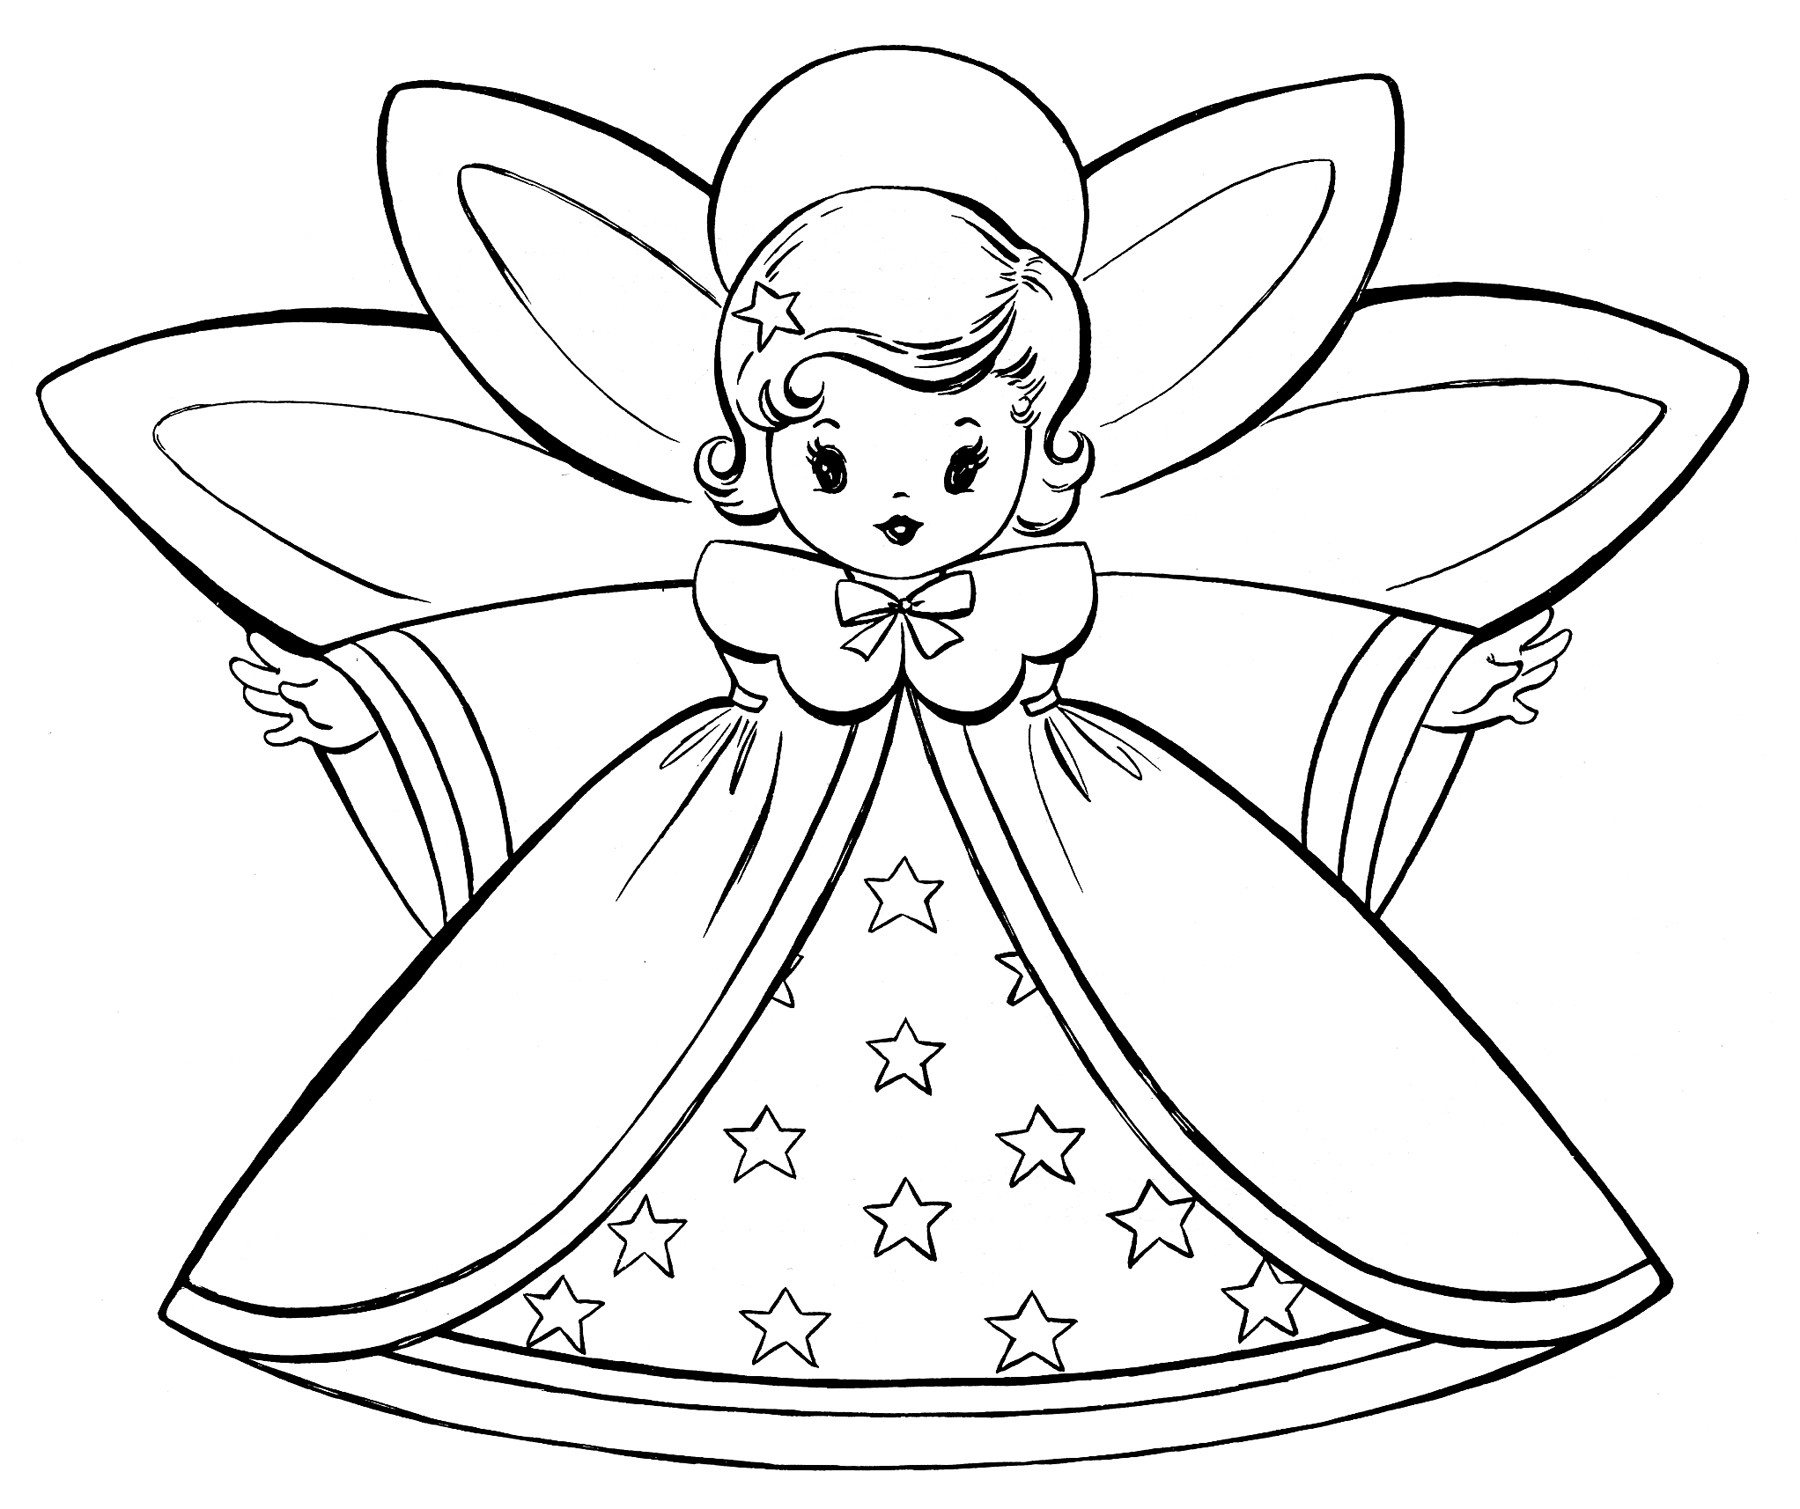 Free Christmas Coloring Pages For Kids  Free Christmas Coloring Pages Retro Angels The